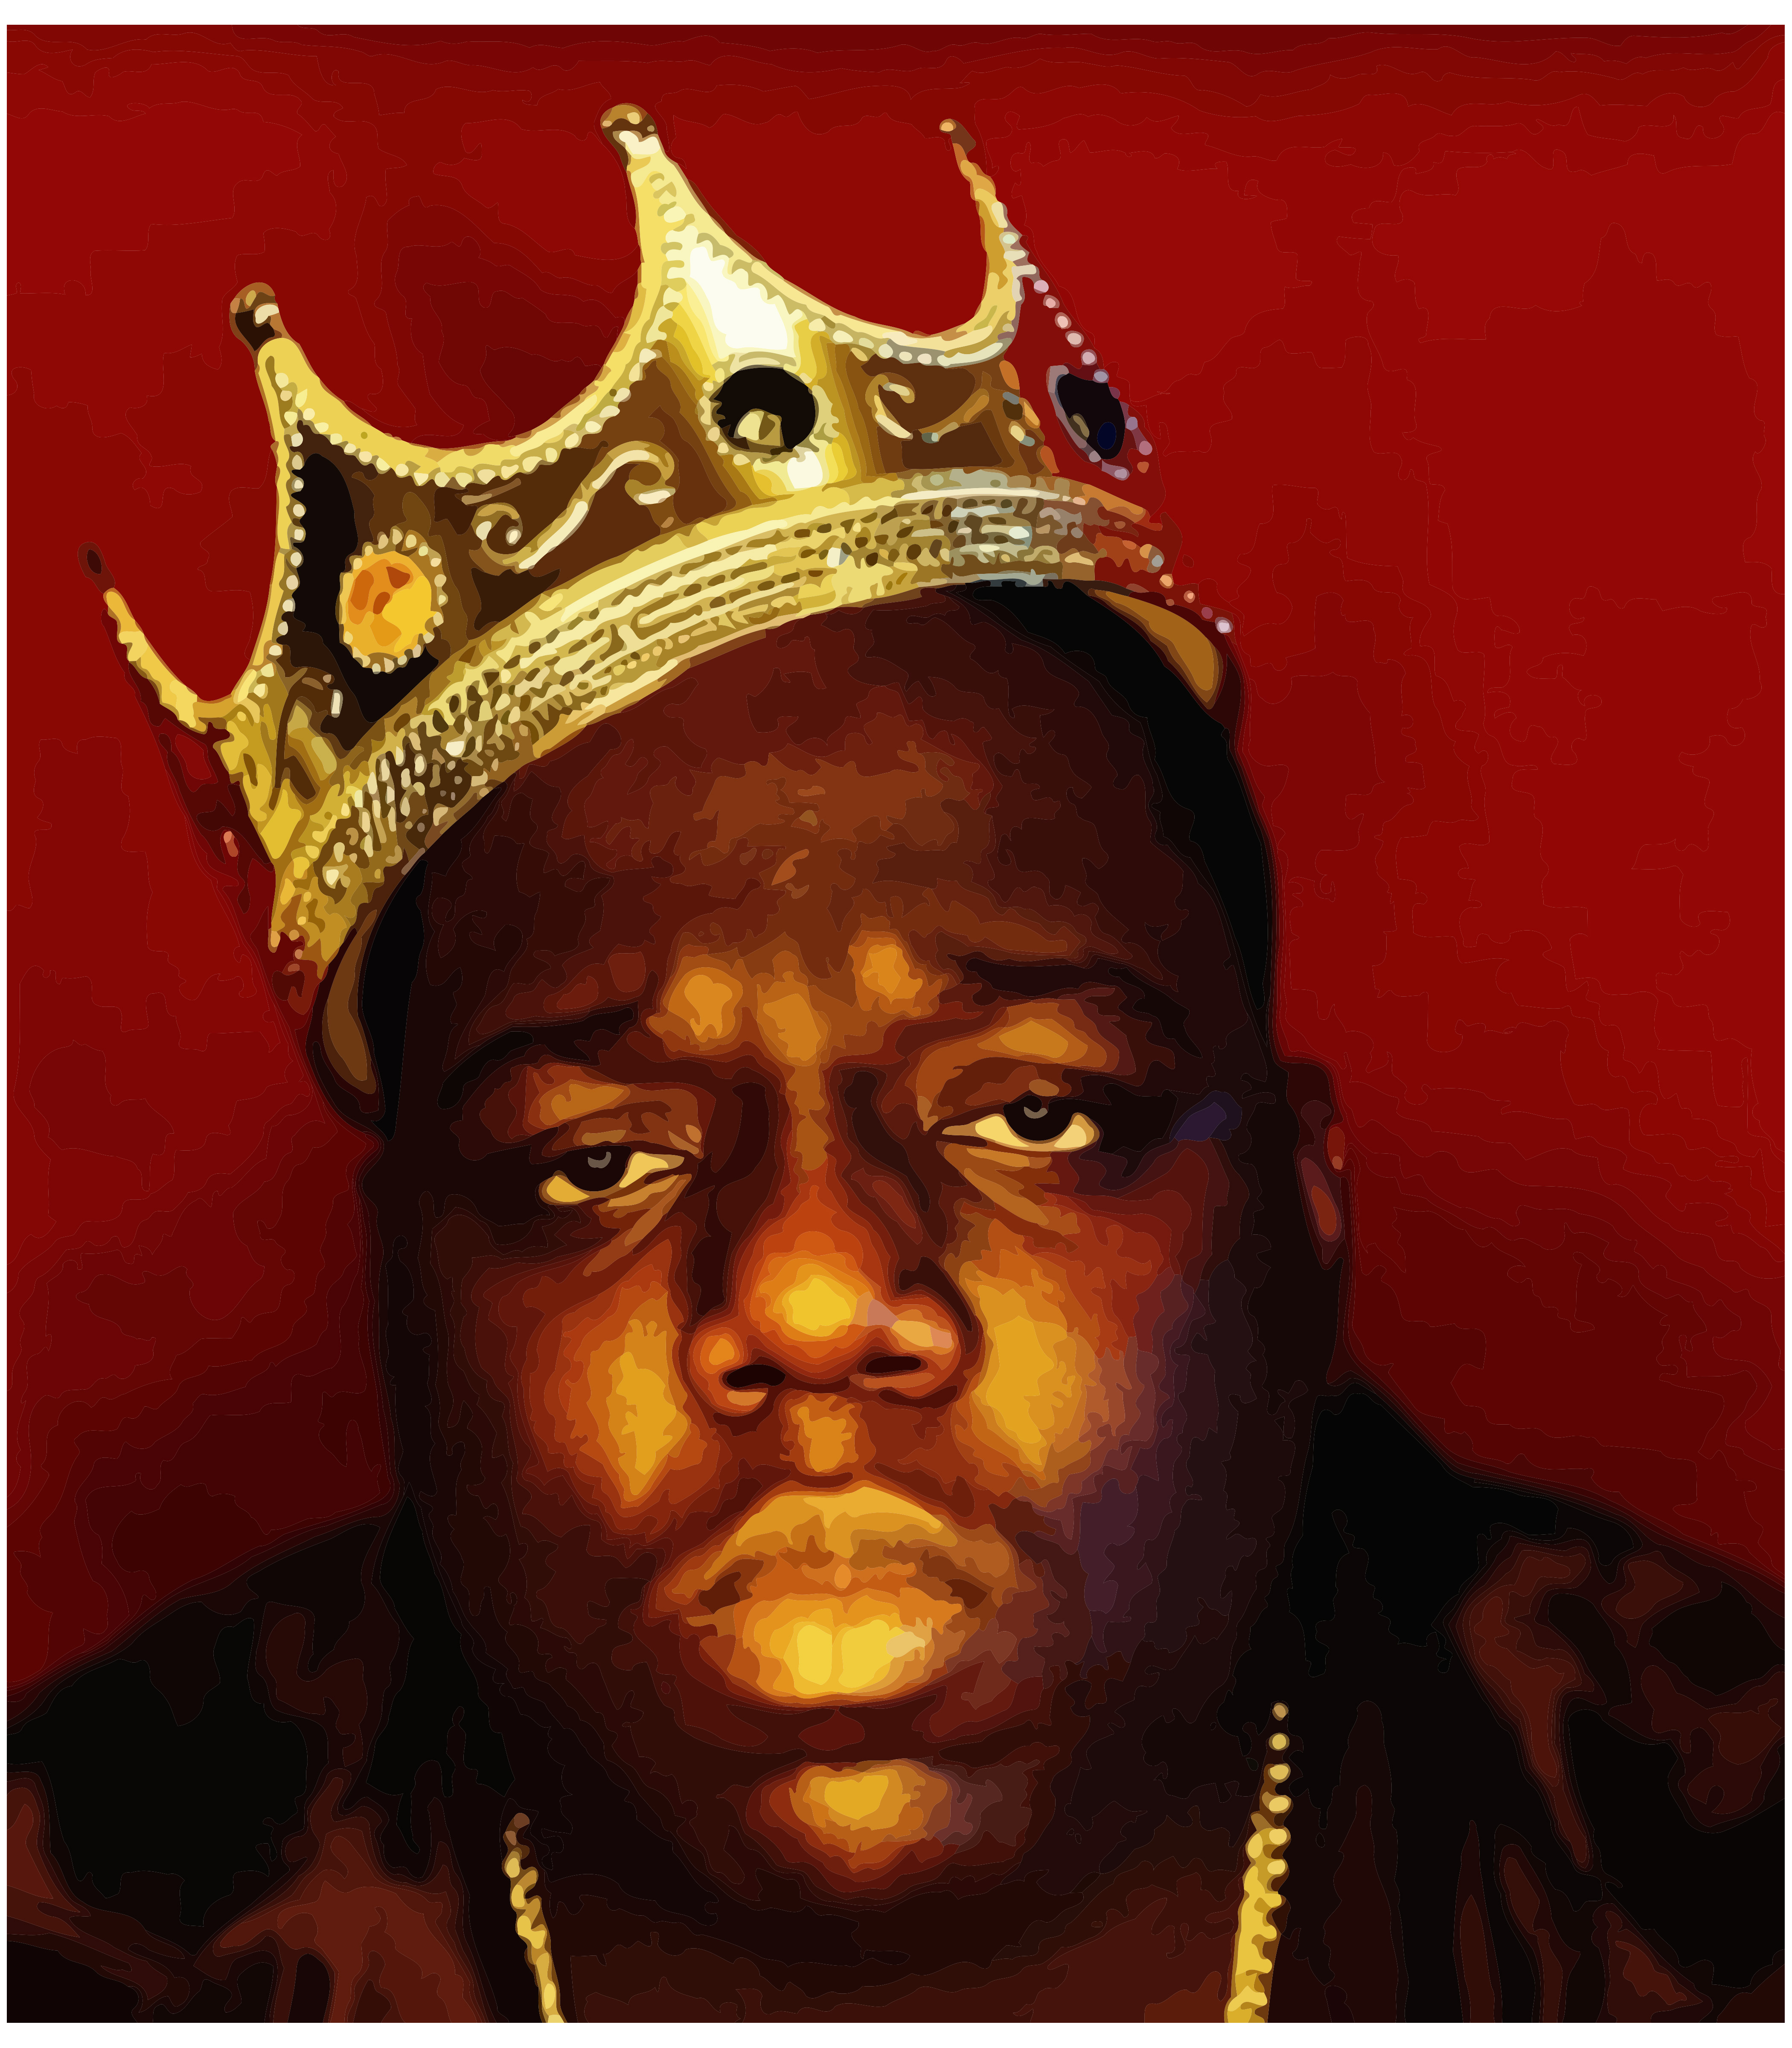 97+ The Notorious B.I.G. 2018 Wallpapers on WallpaperSafari